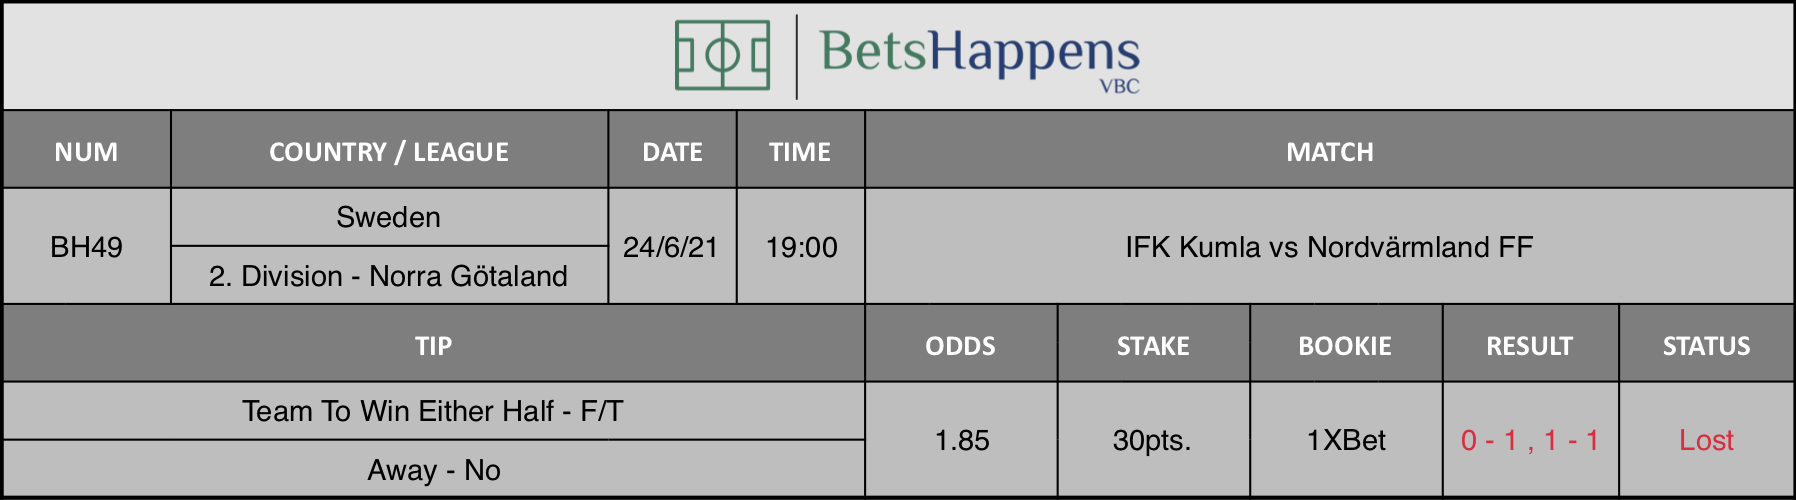 Results of our tip for the IFK Kumla vs Nordvärmland FF match Team To Win Either Half - F/T Away - No is recommended.